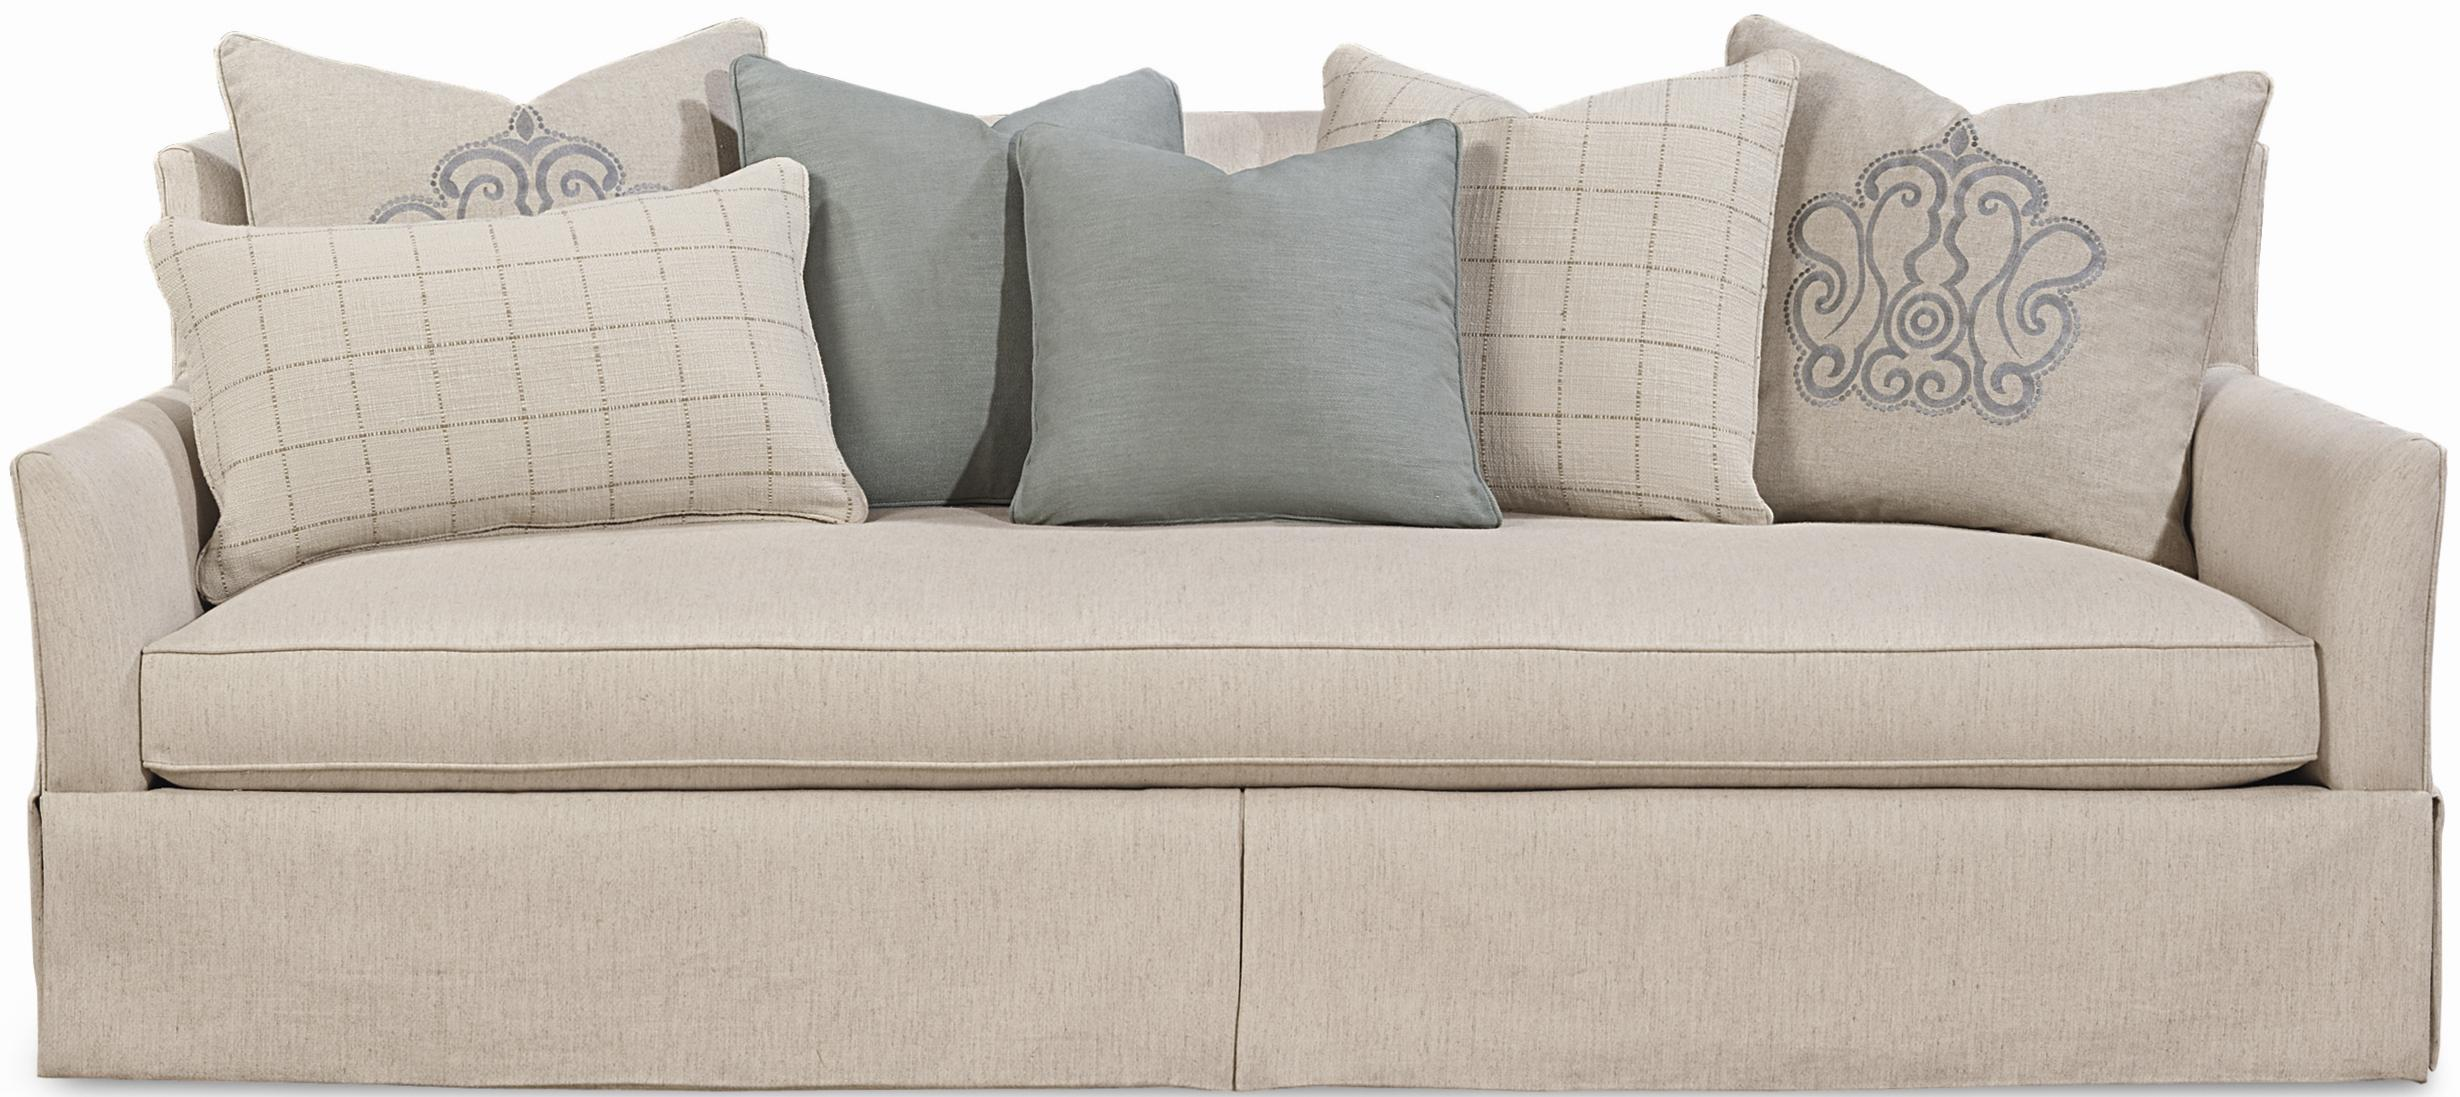 schnadig sofa 9090 beds for sale by owner furniture ebay thesofa